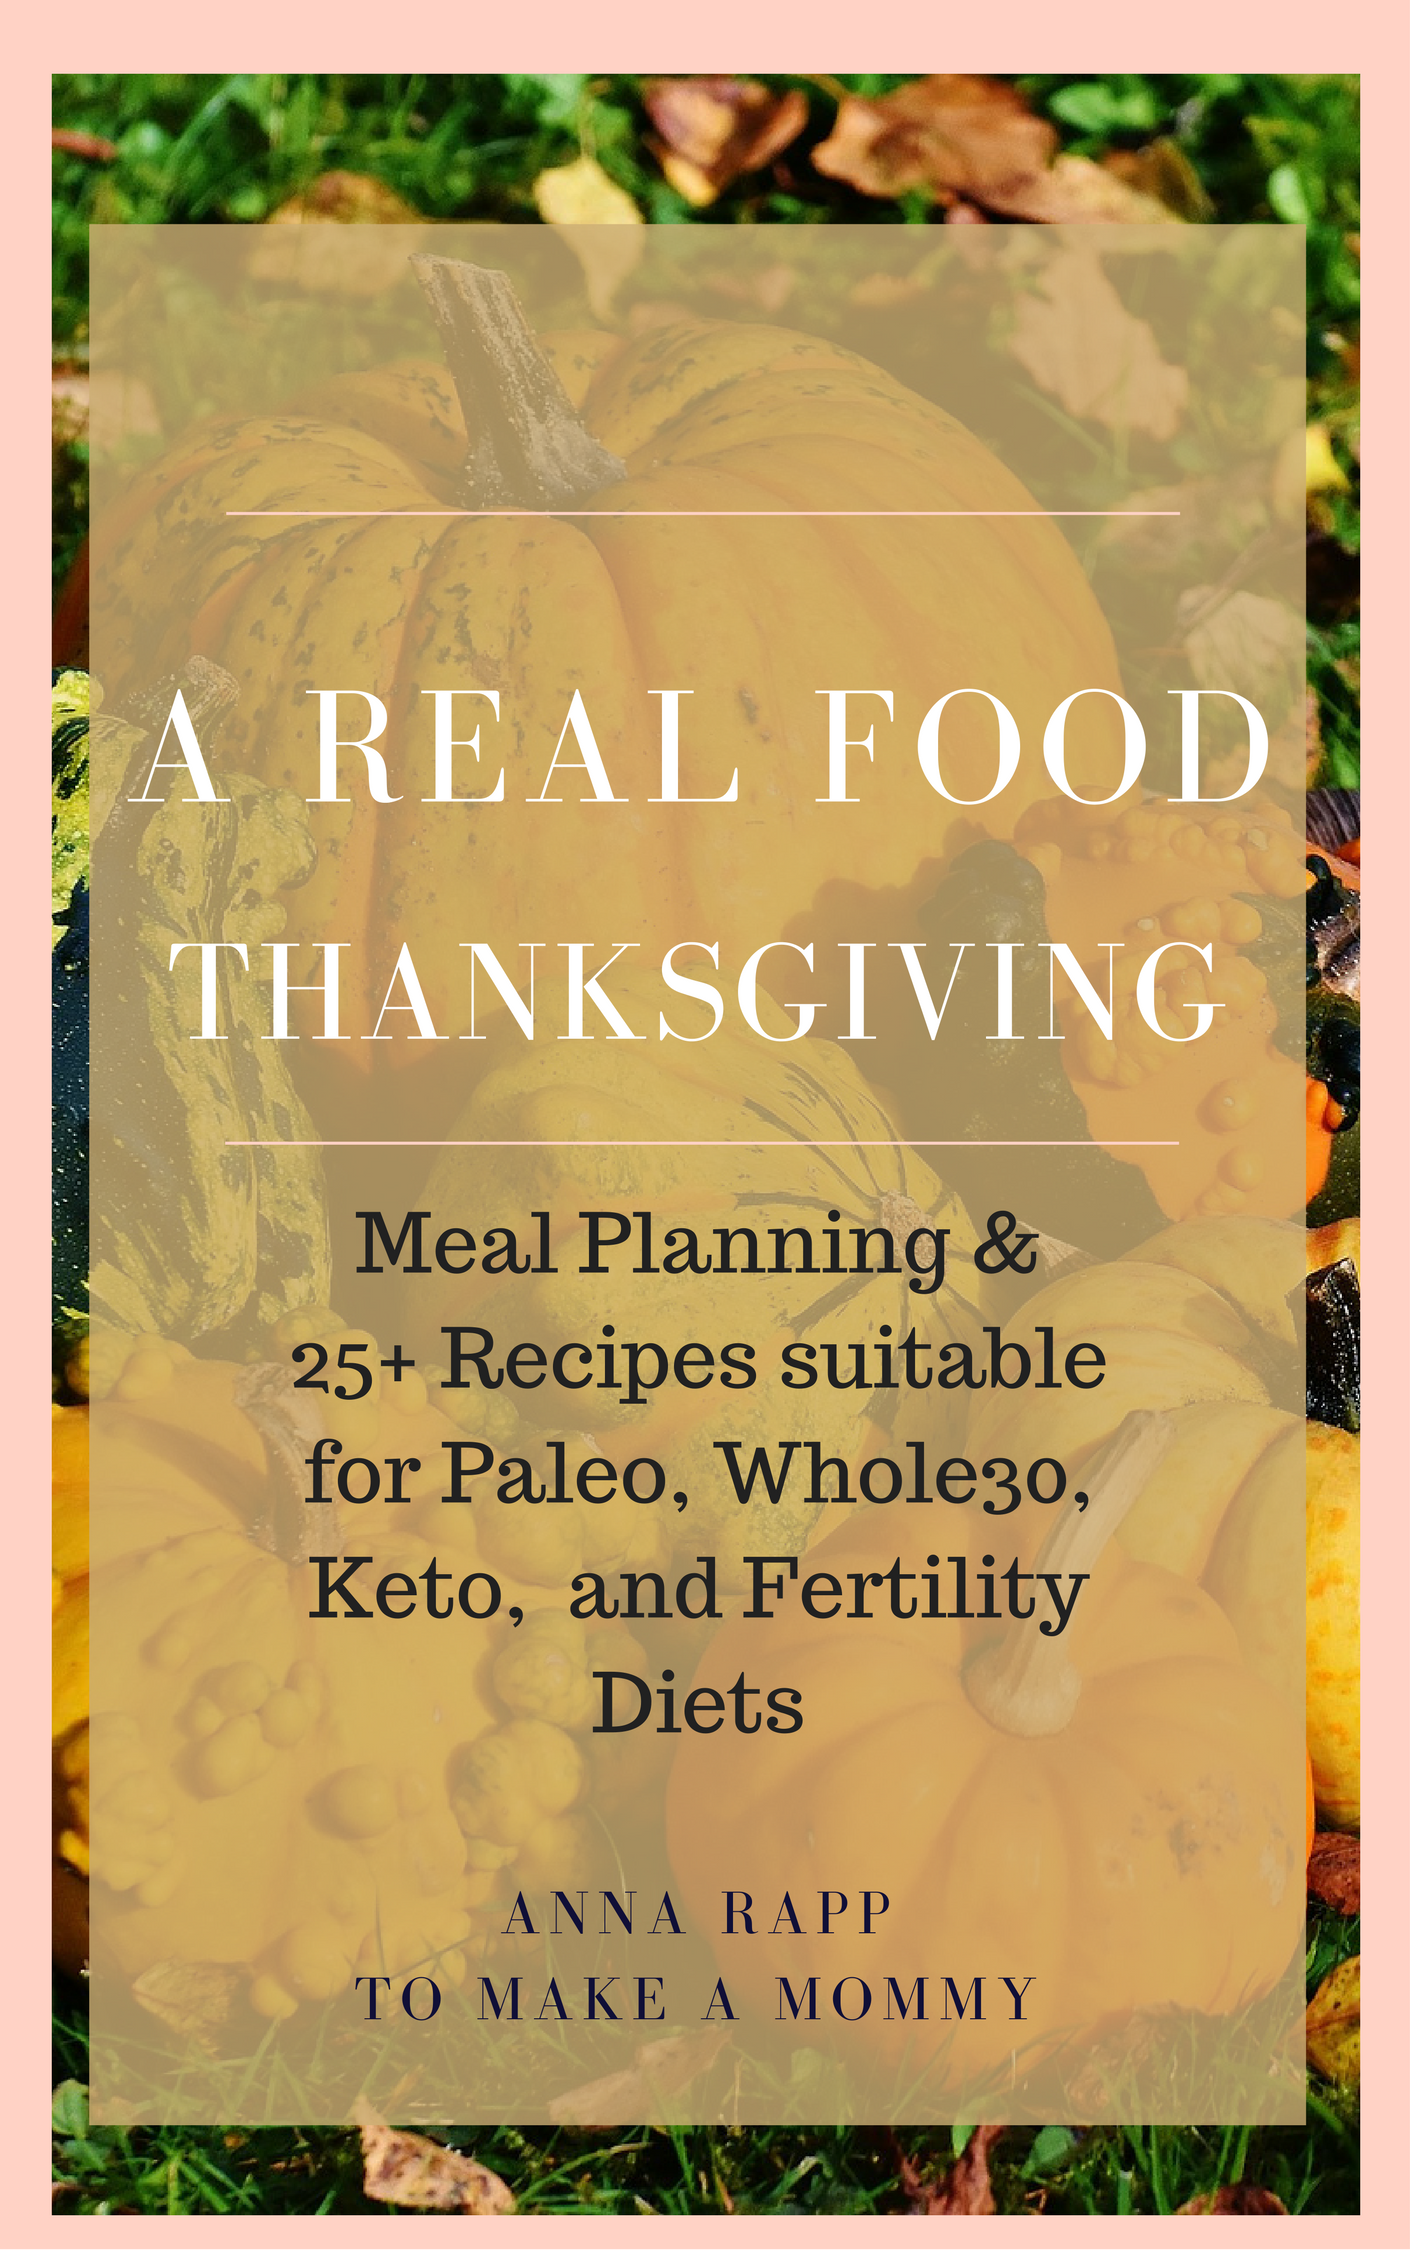 A Thanksgiving Recipe & Meal Guide for Fertility, Paleo, Keto, and Whole30 Diets!